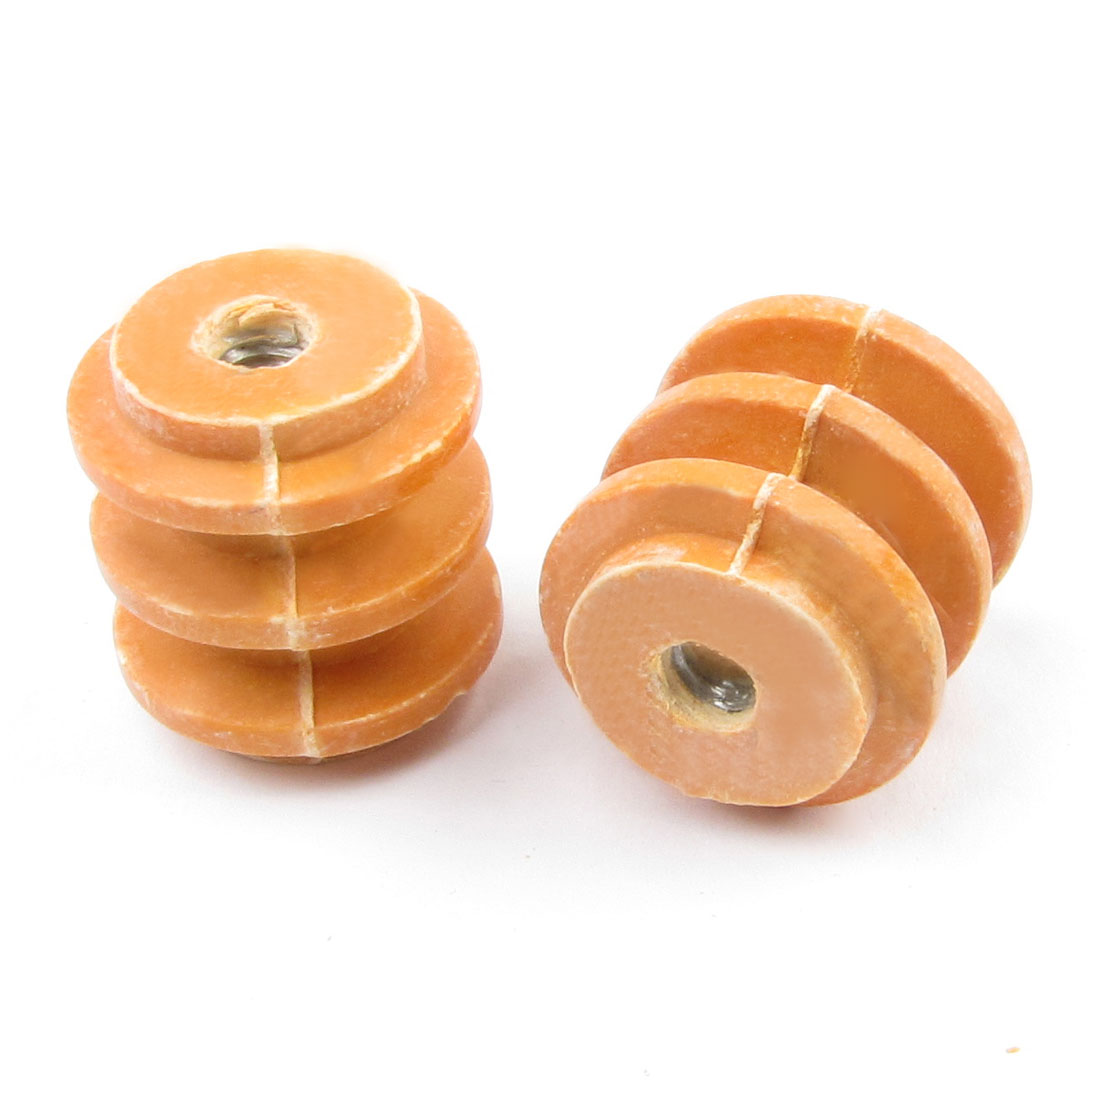 2 Pcs 25mm Height 6mm Thread 660V Busbar Insulator Support Connector